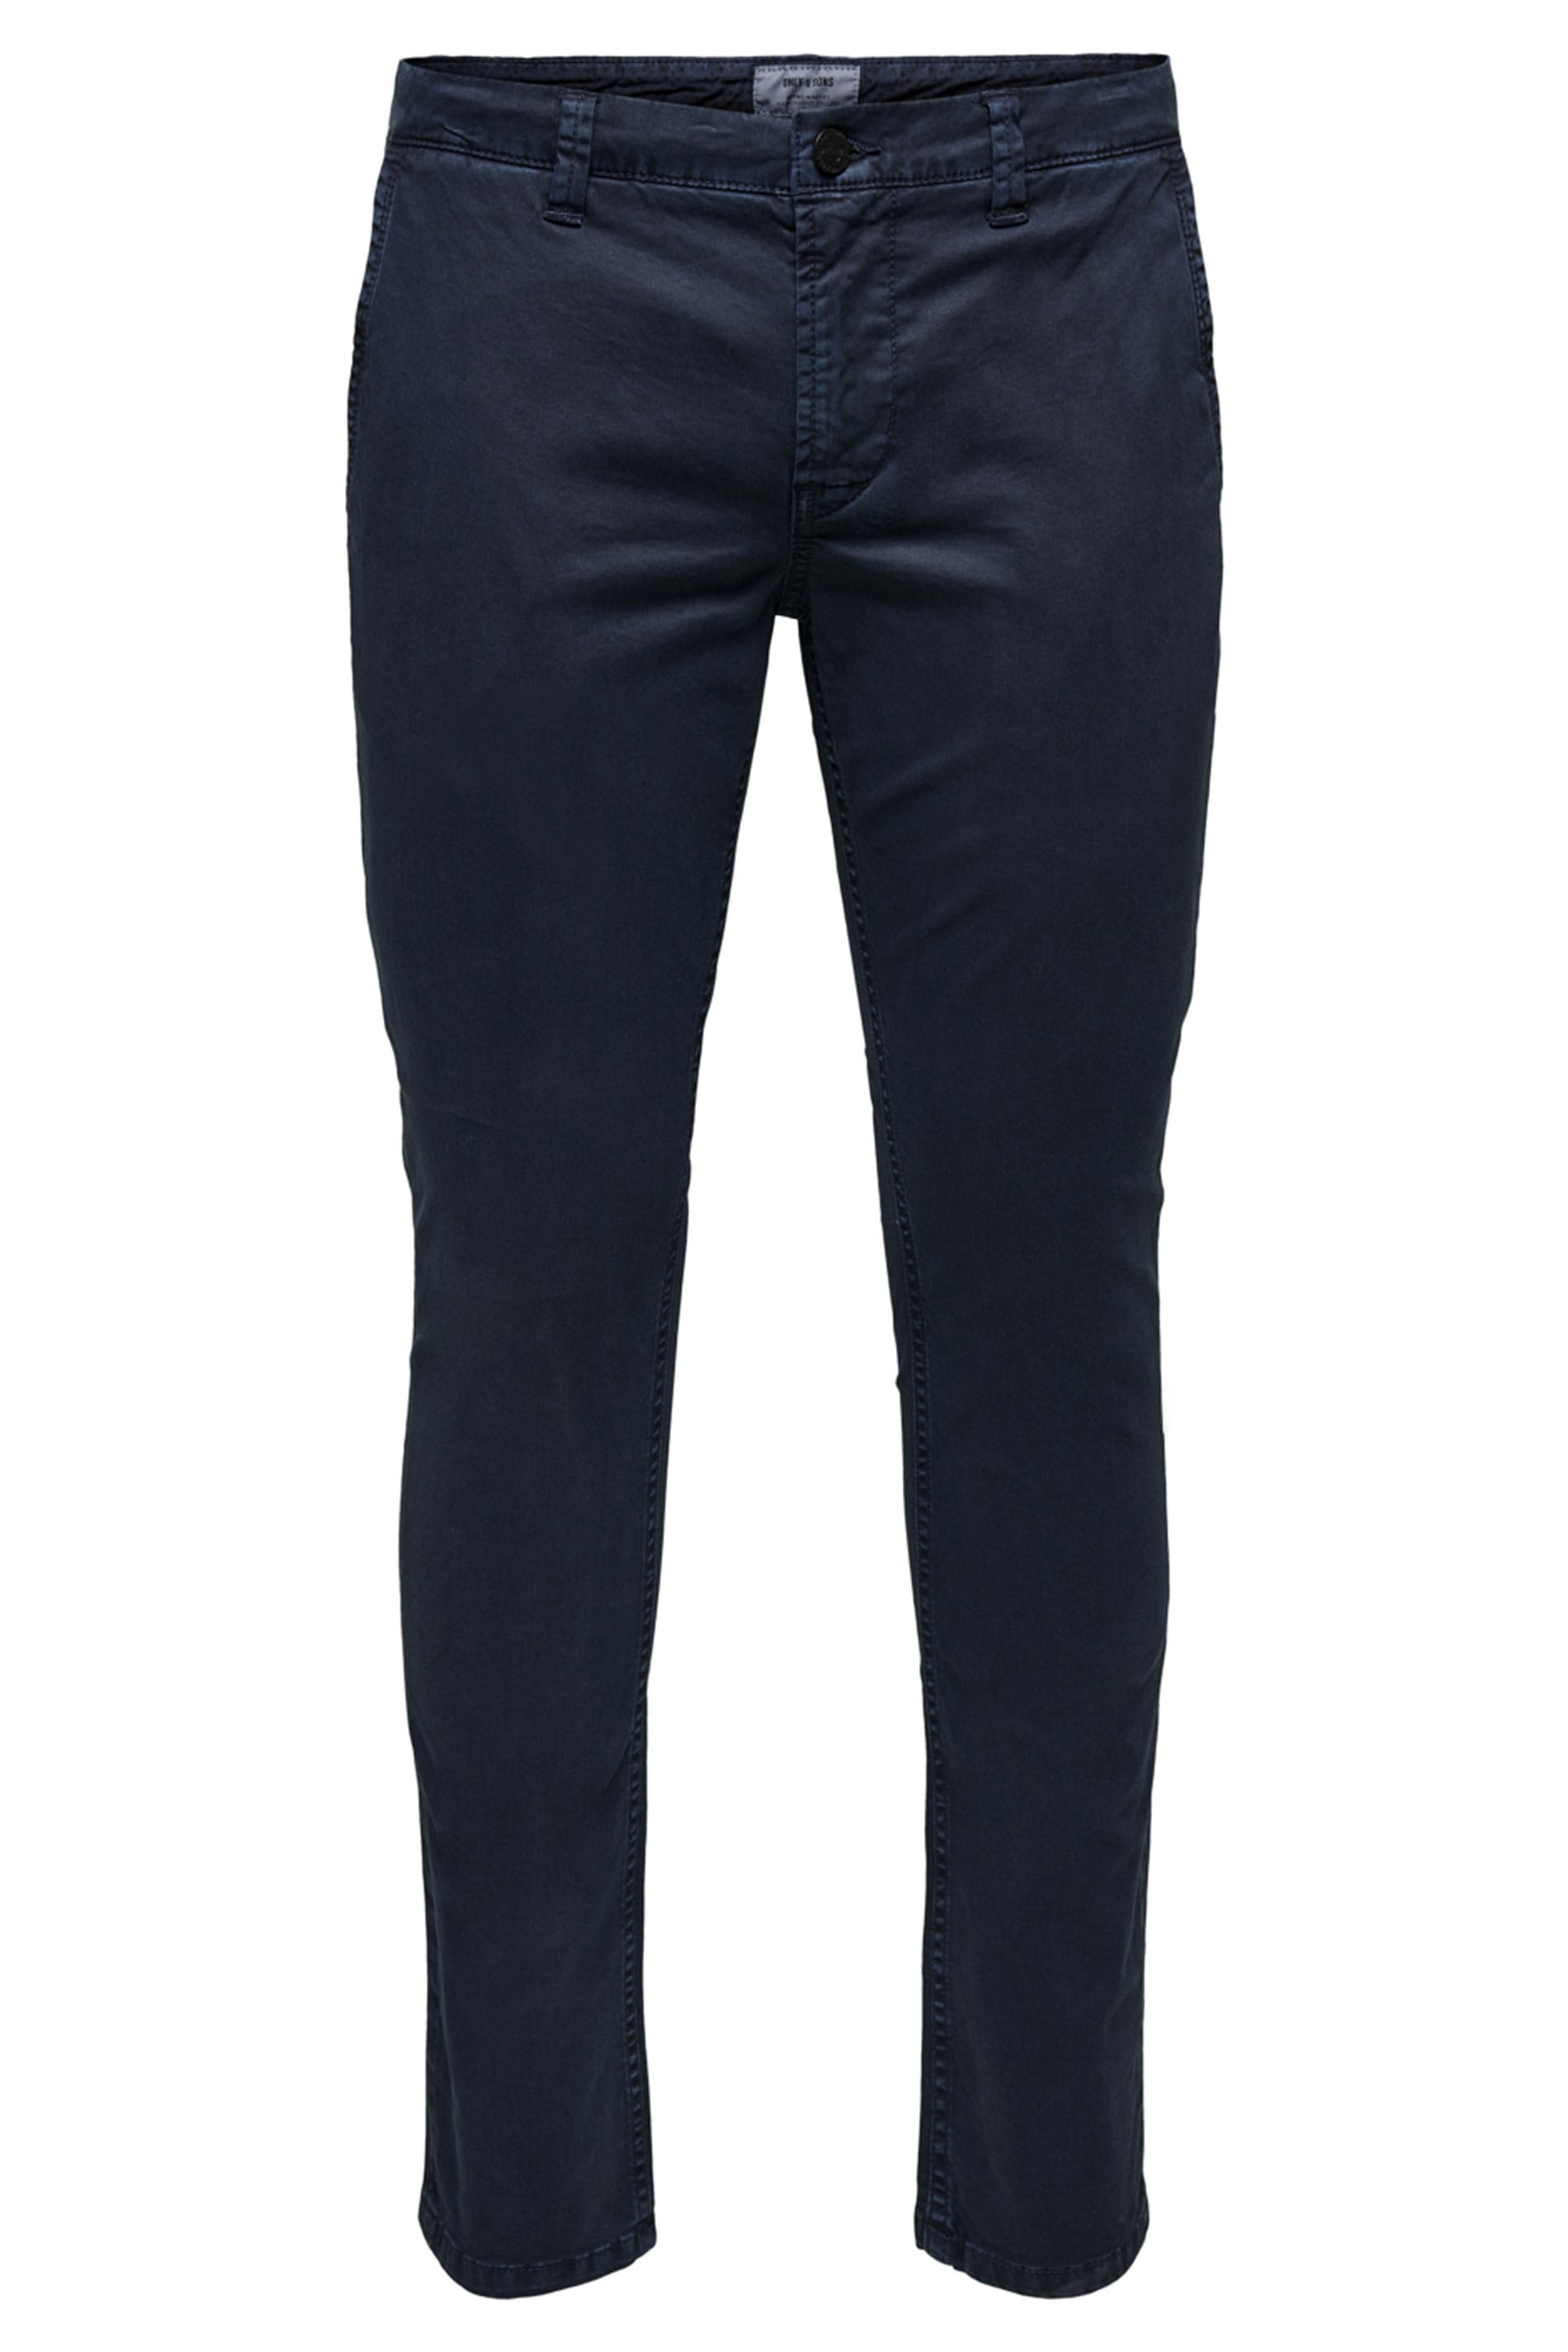 ONLY & SONS Navy Chinos_5d7a.jpg